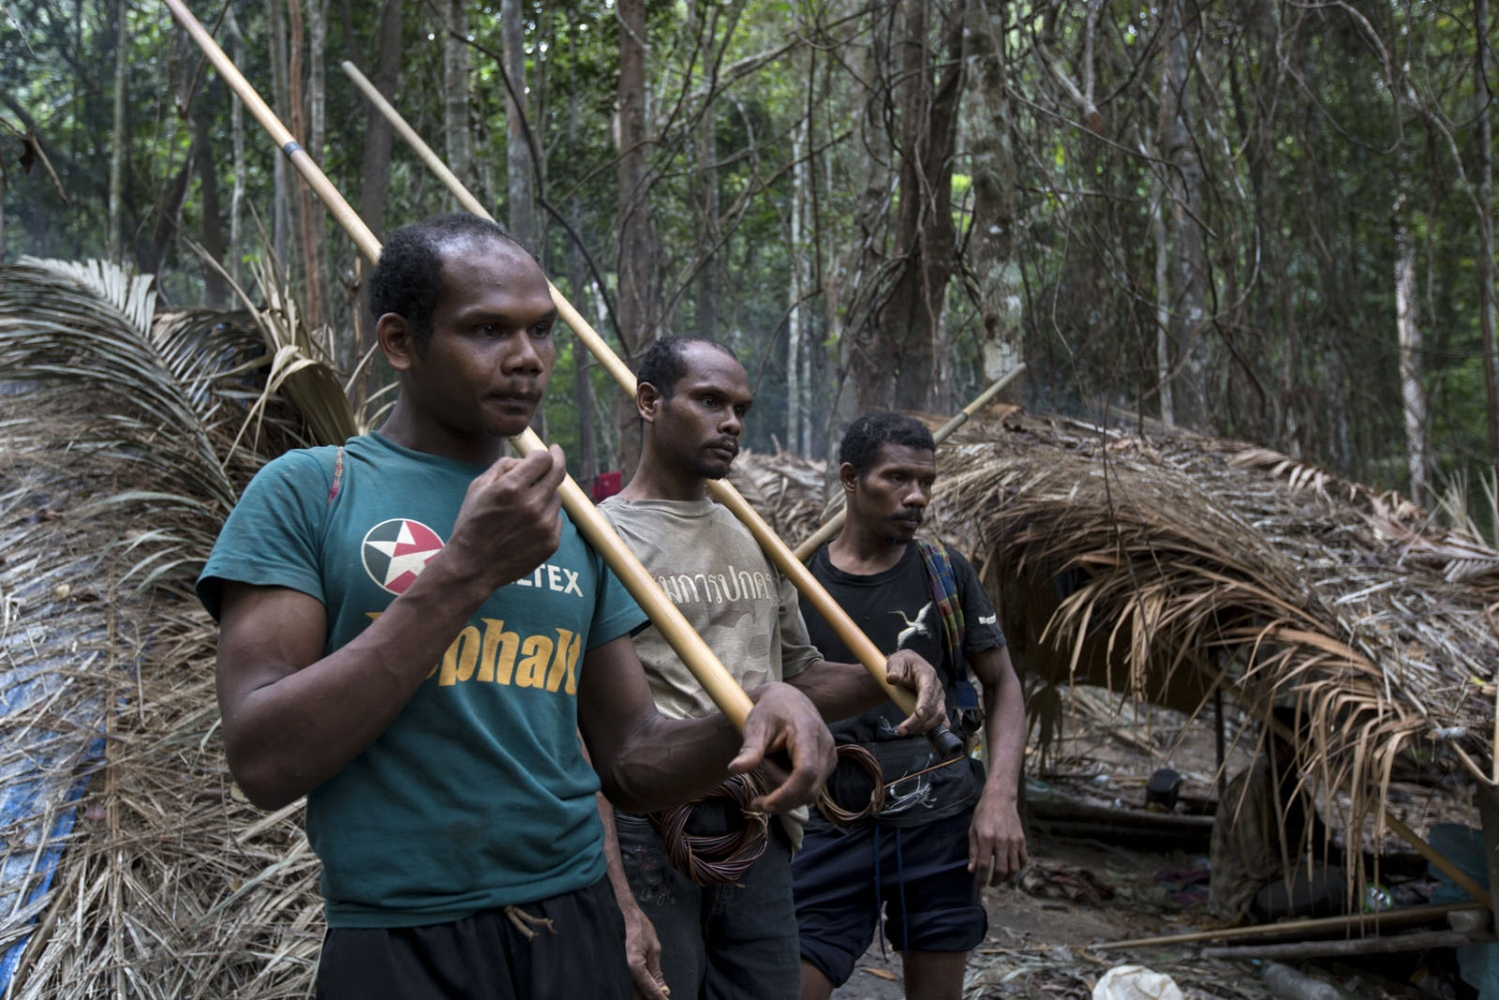 Maniq men prepare to go out on a hunt. After having left the village they will separate and go off in different directions. Satun - September 2016